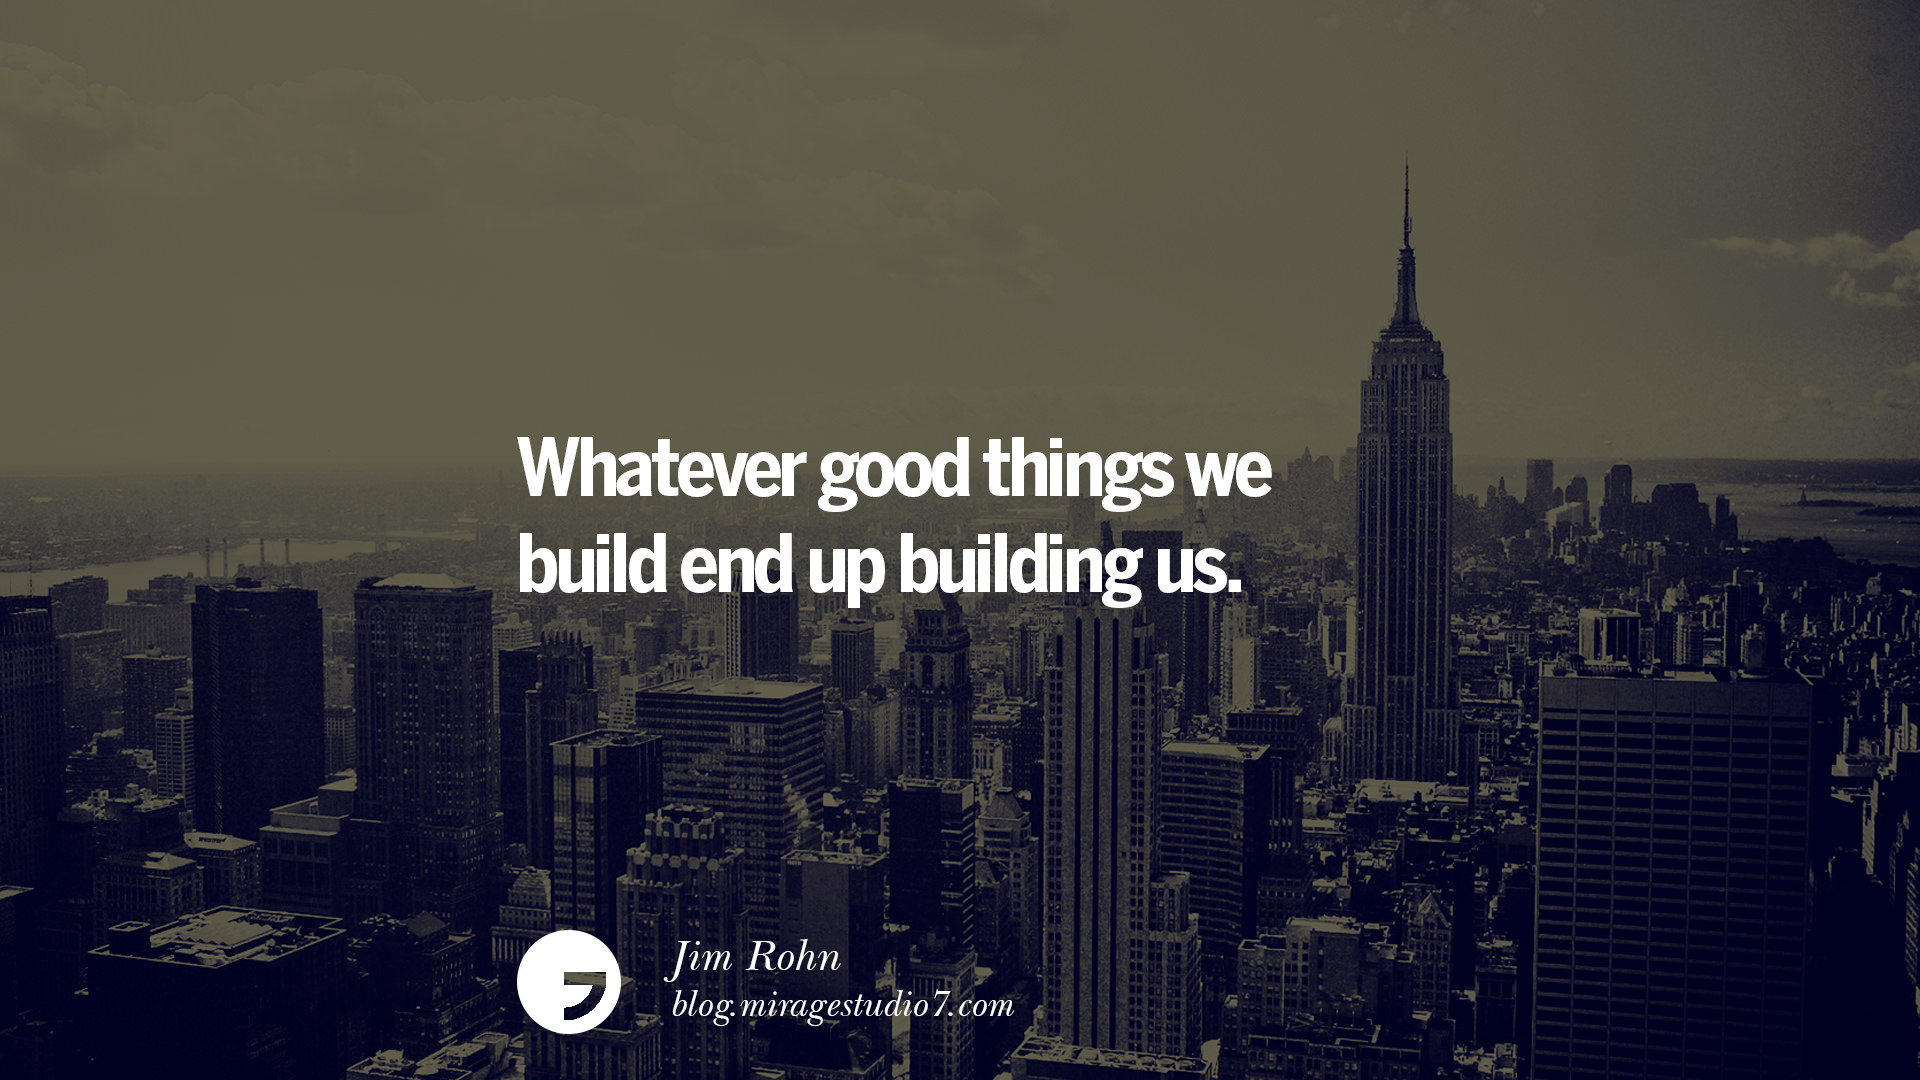 Construction Quotes Endearing 28 Inspirational Architecture Quotesfamous Architects And